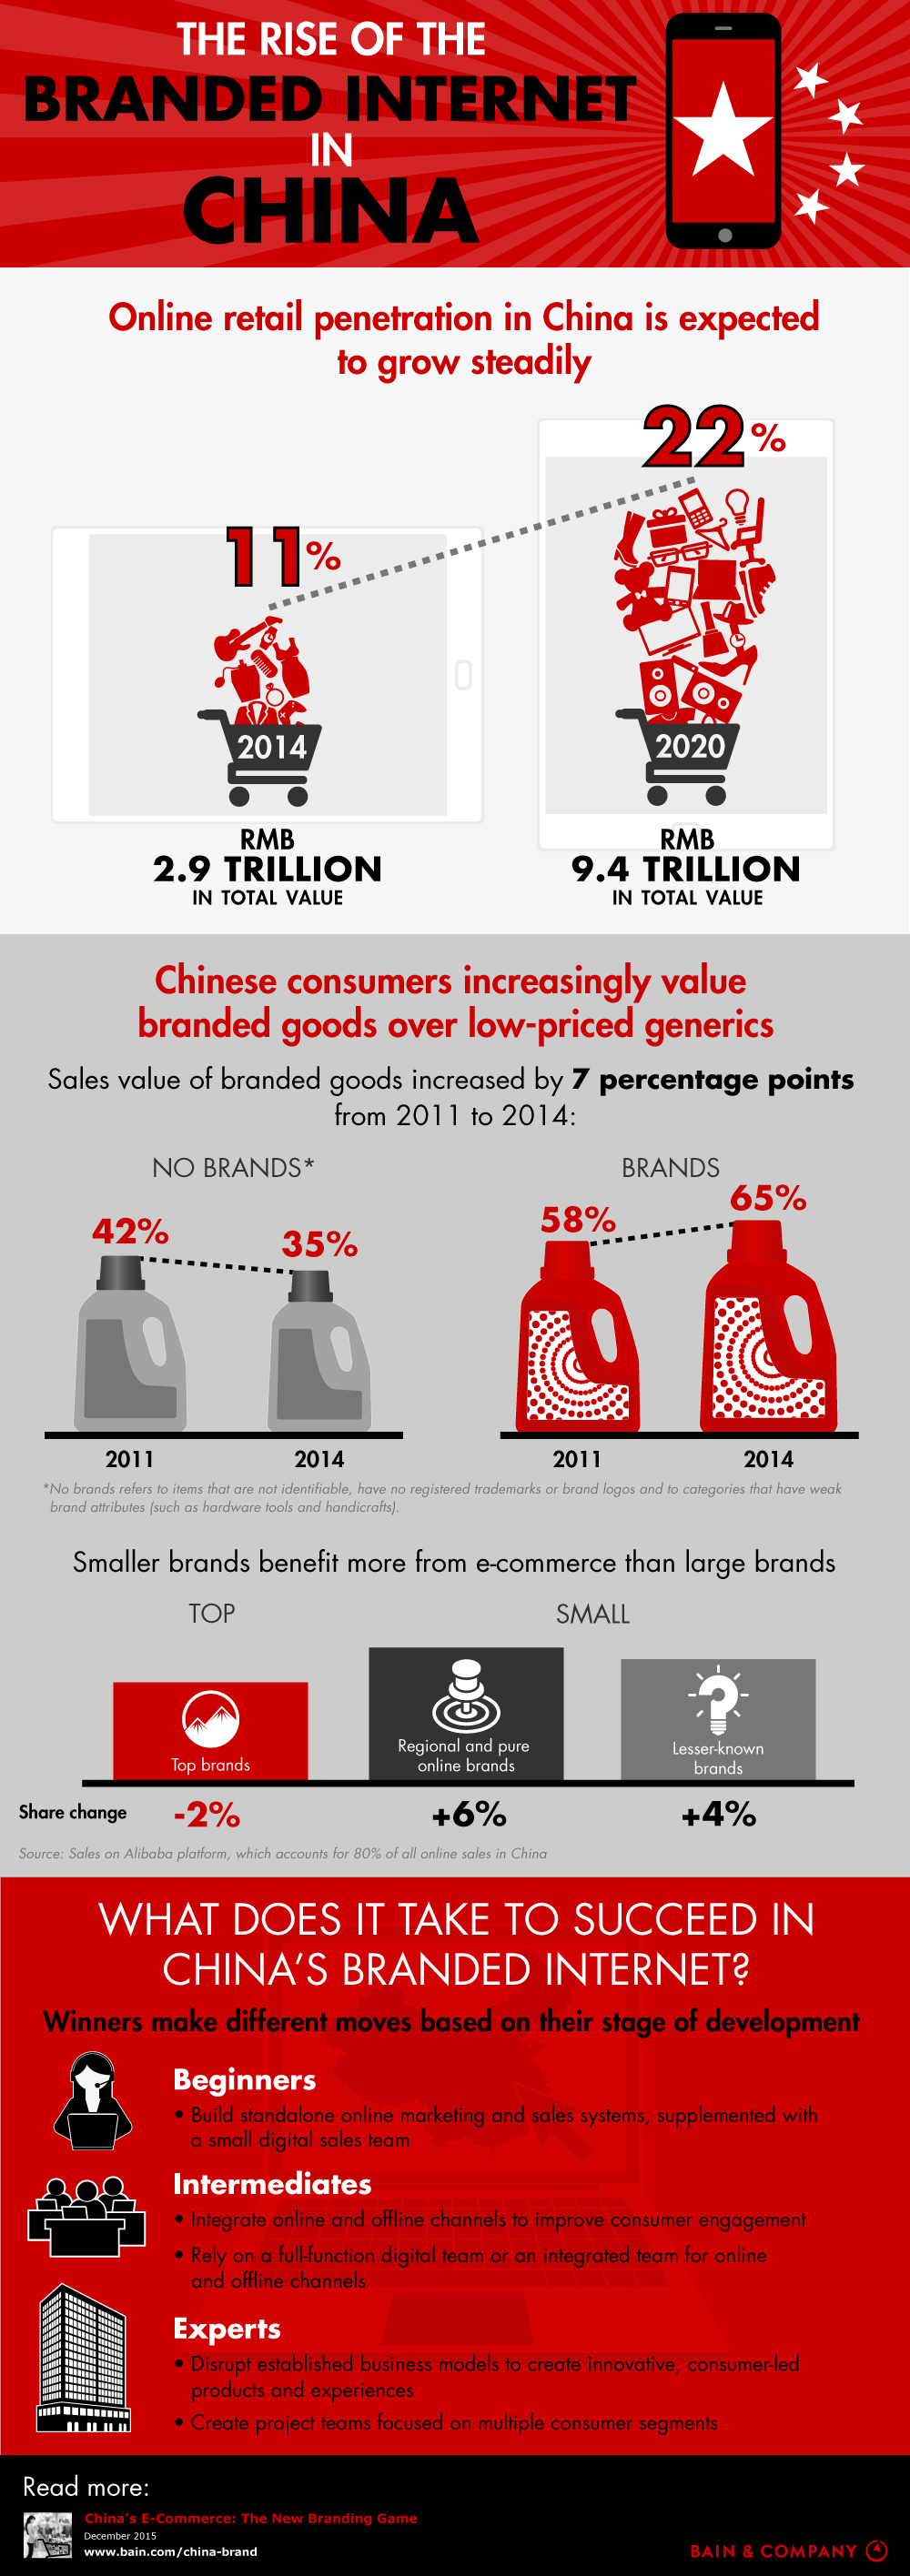 Branded Ecommerce in China